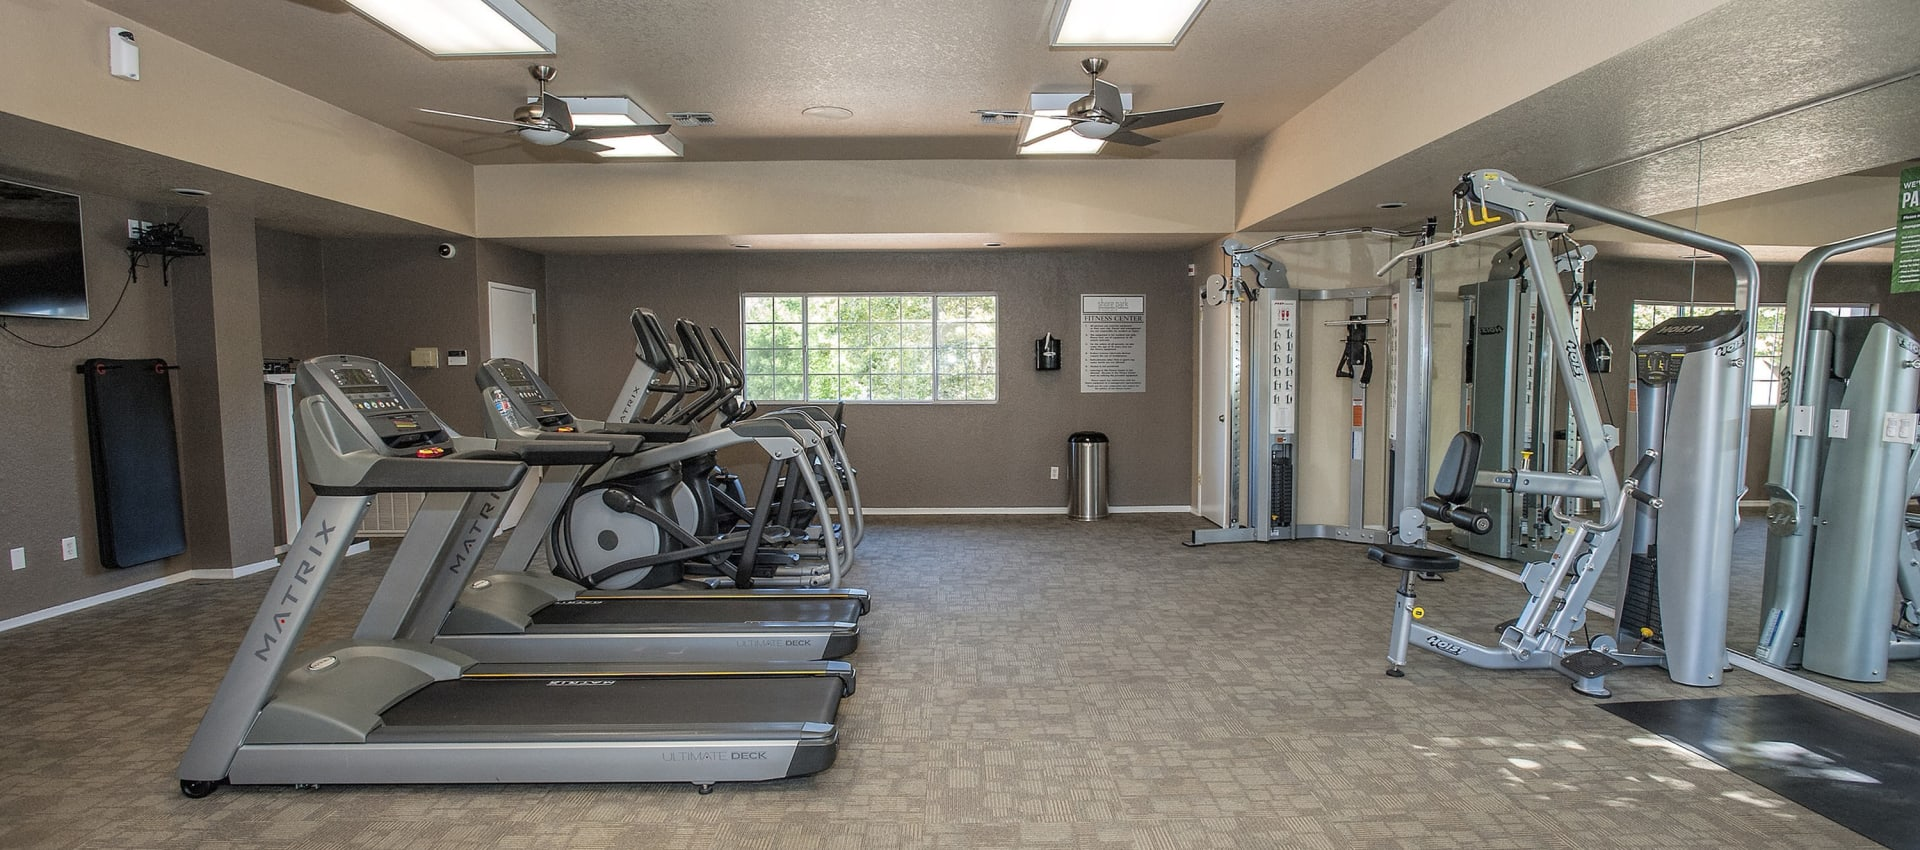 Fitness center at Shore Park at Riverlake in Sacramento, California